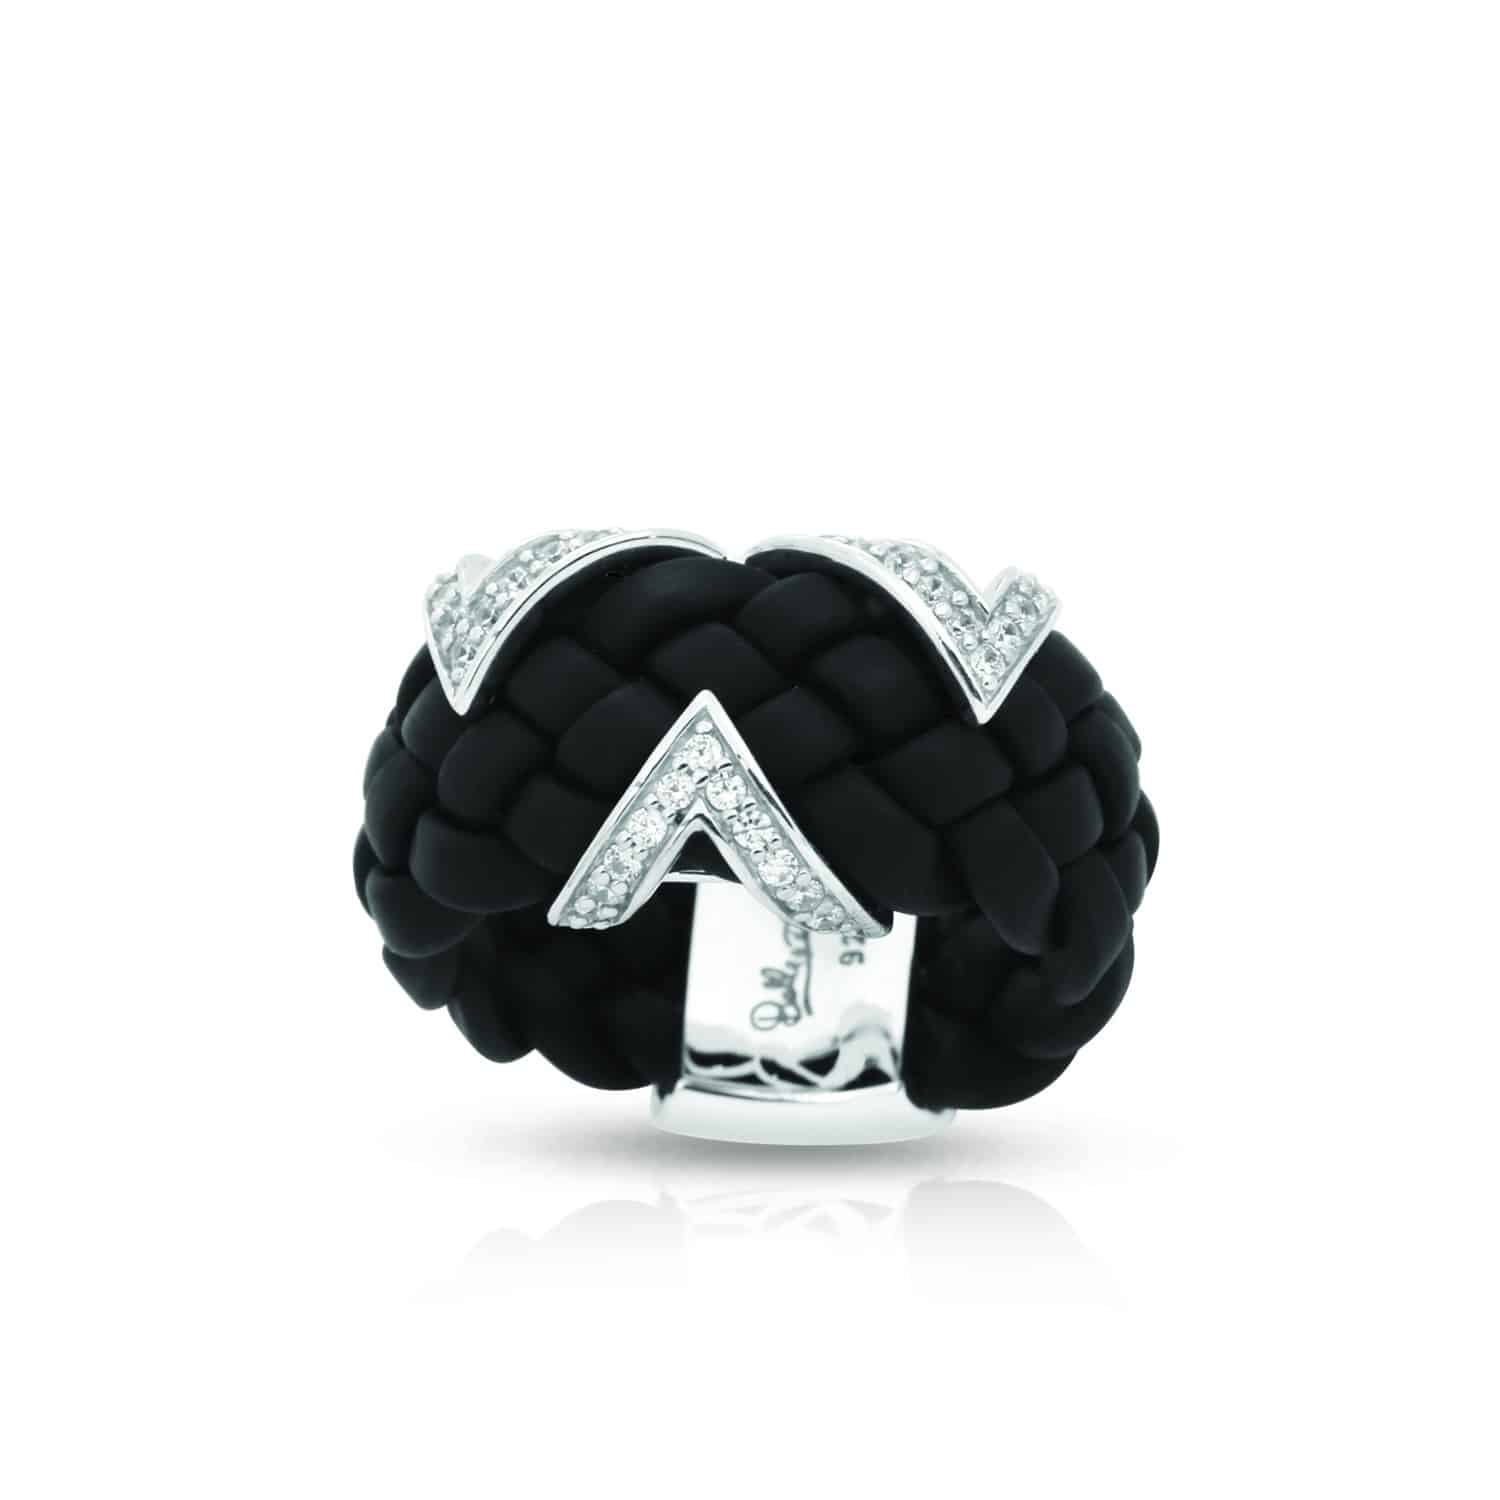 Belle Étoile Arpeggio Black Ring